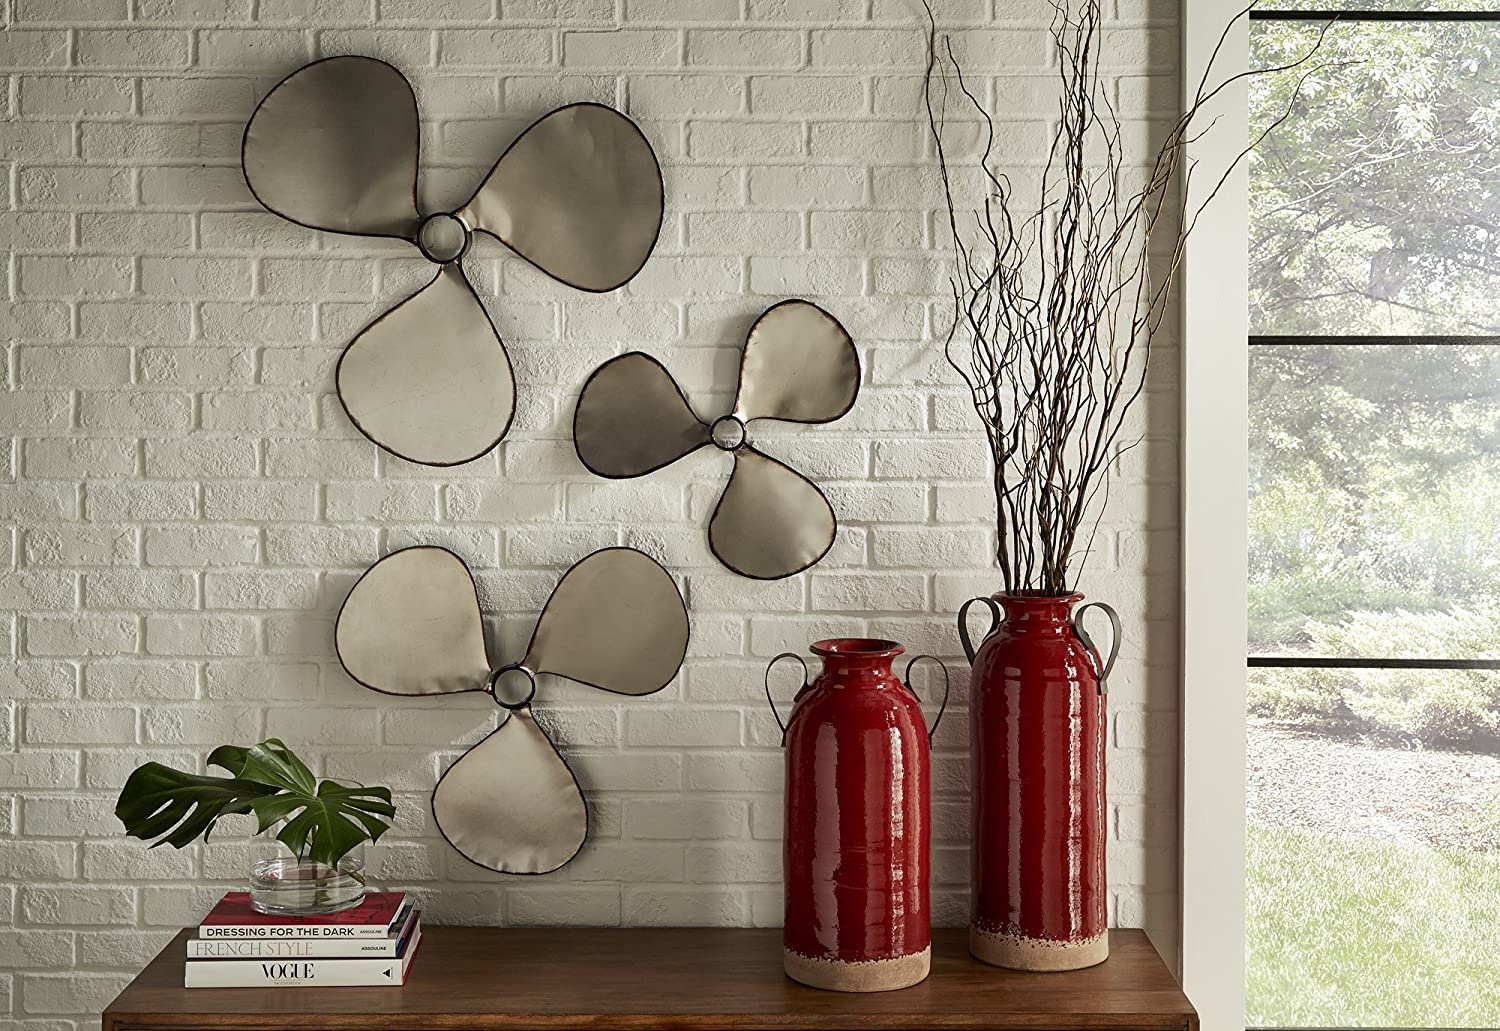 Imax Pelham Propeller Wall Decor, industrial style home decor